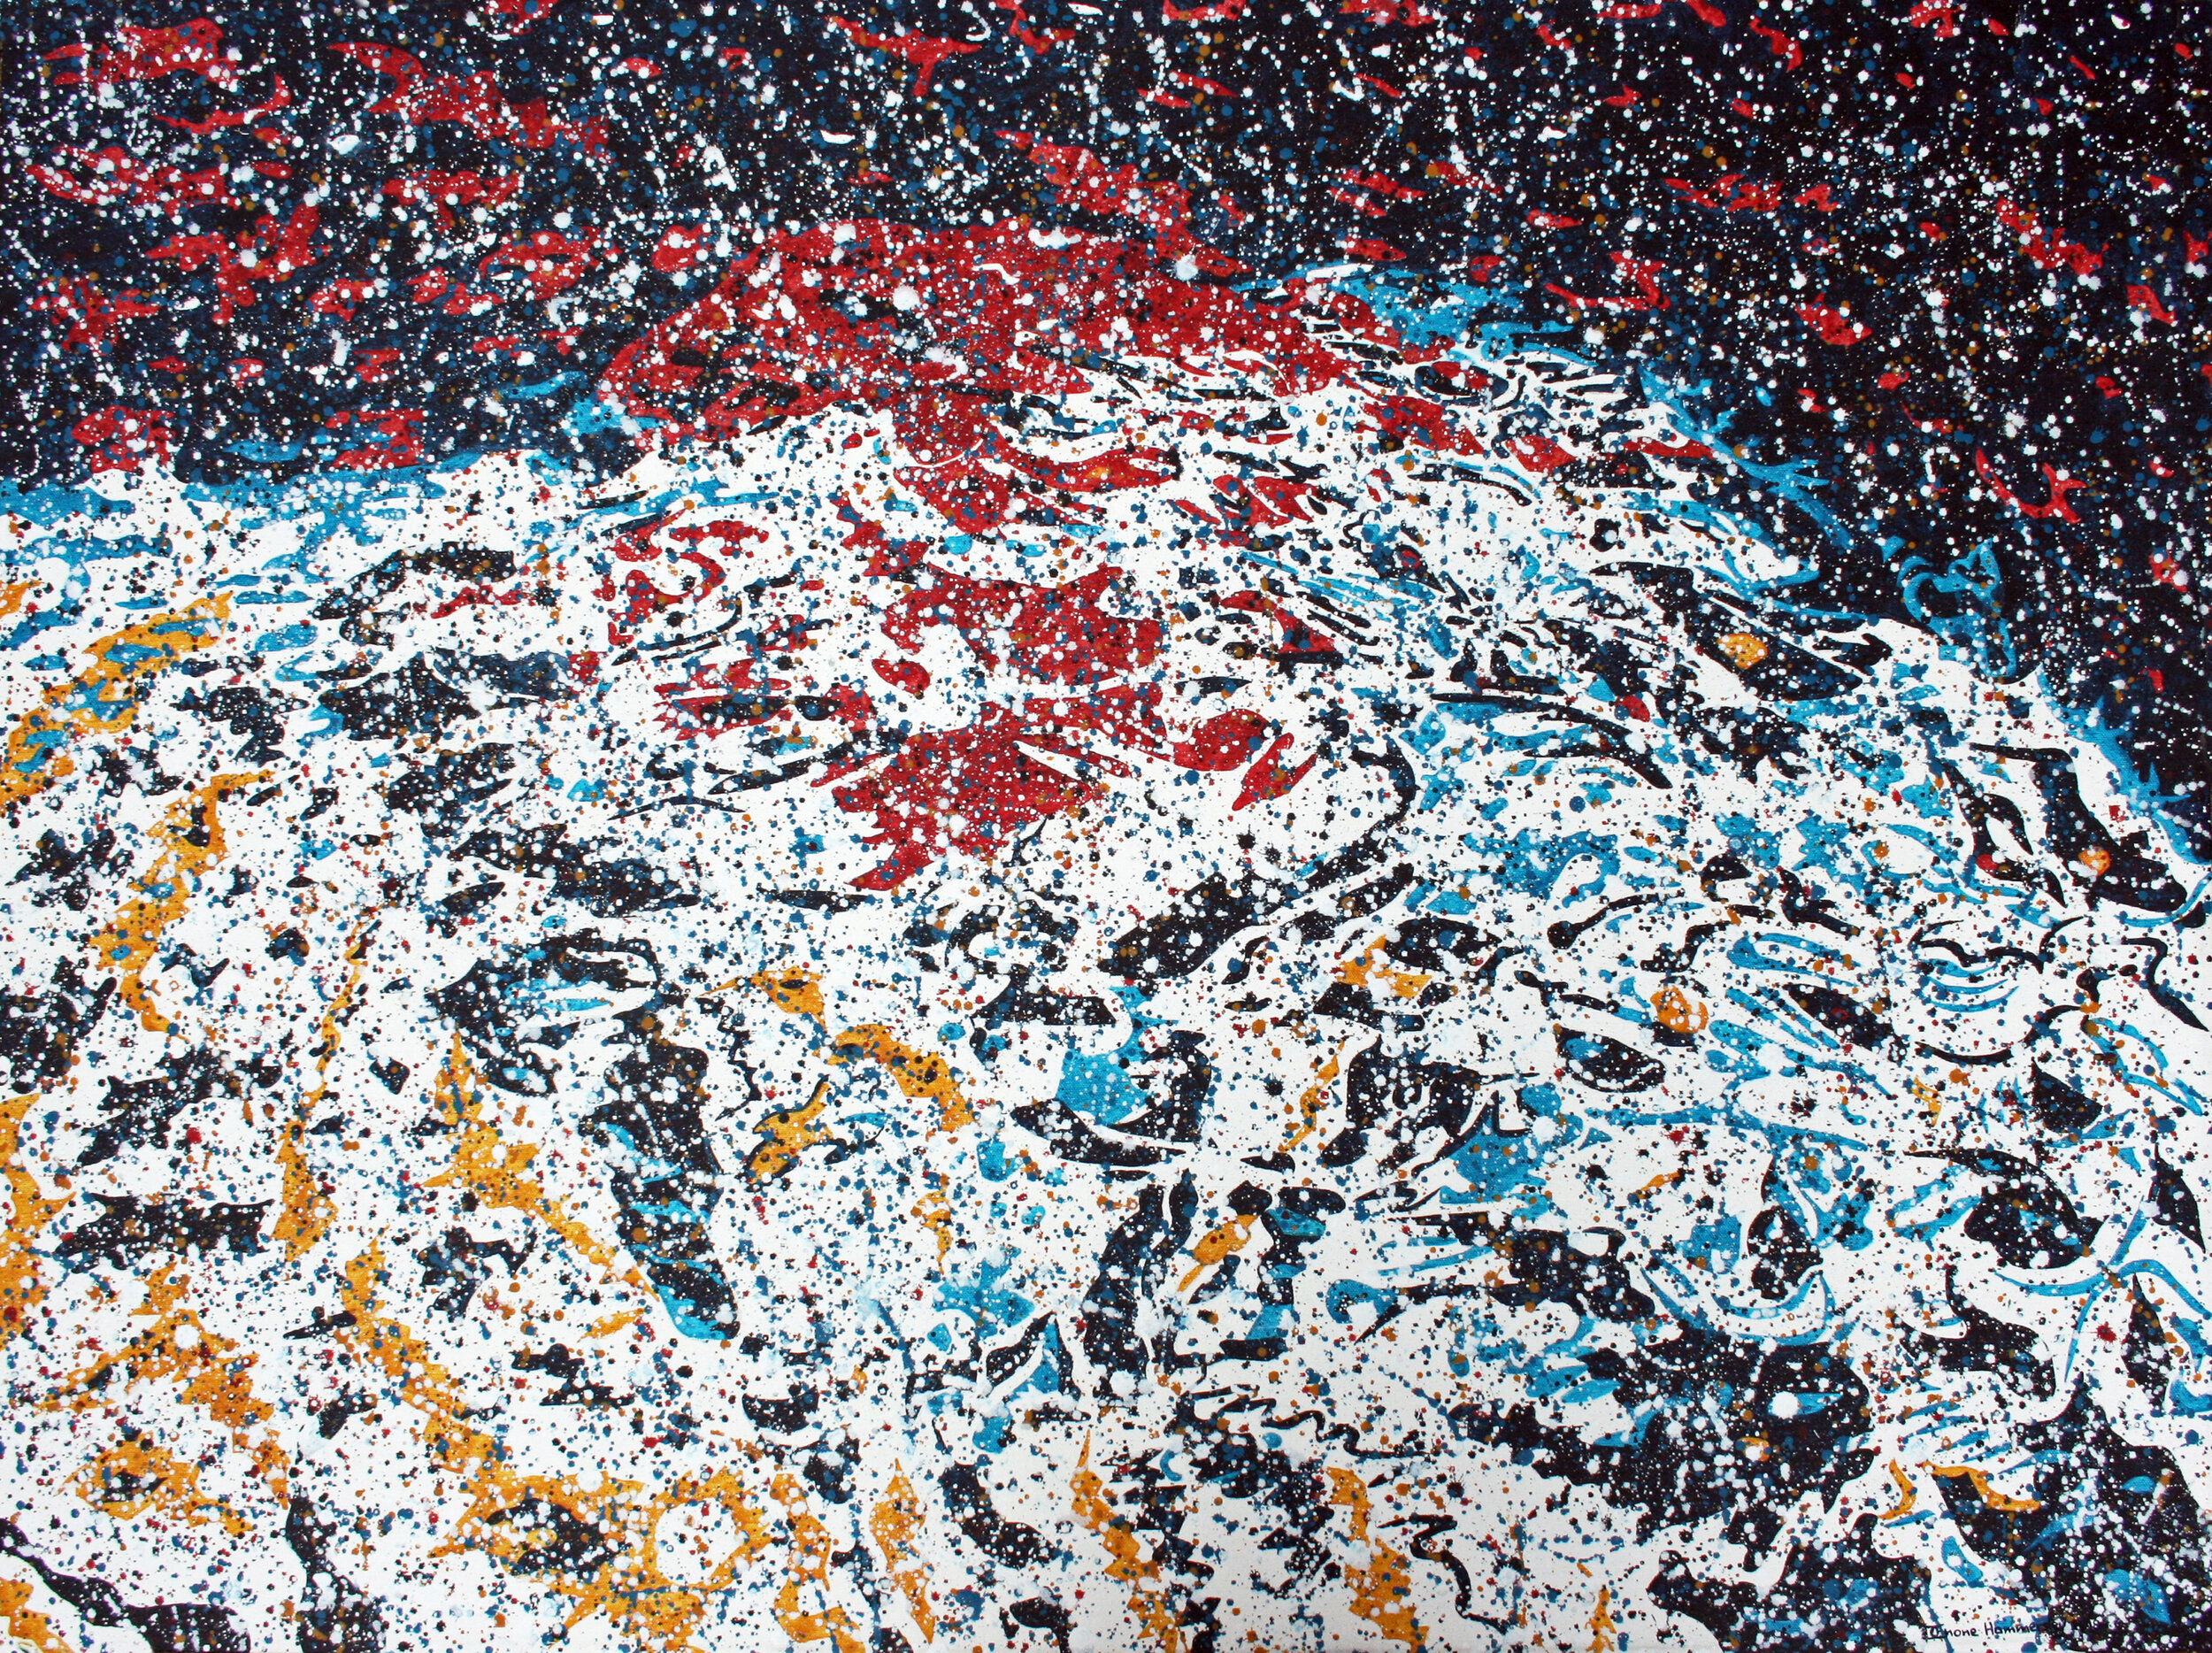 Water-based pointillistic abstraction painting with fragmented shapes and red, black, blue, yellow areas.